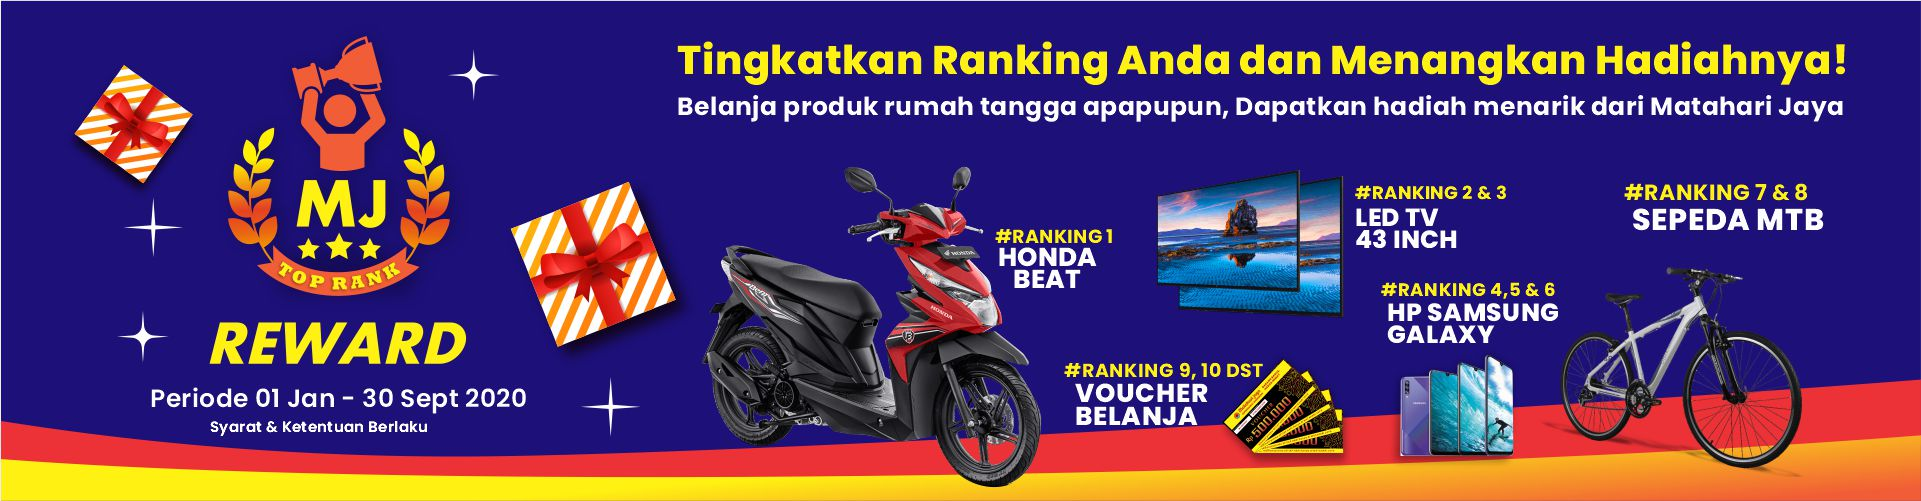 PROMO TOP RANK REWARD MATAHARI JAYA